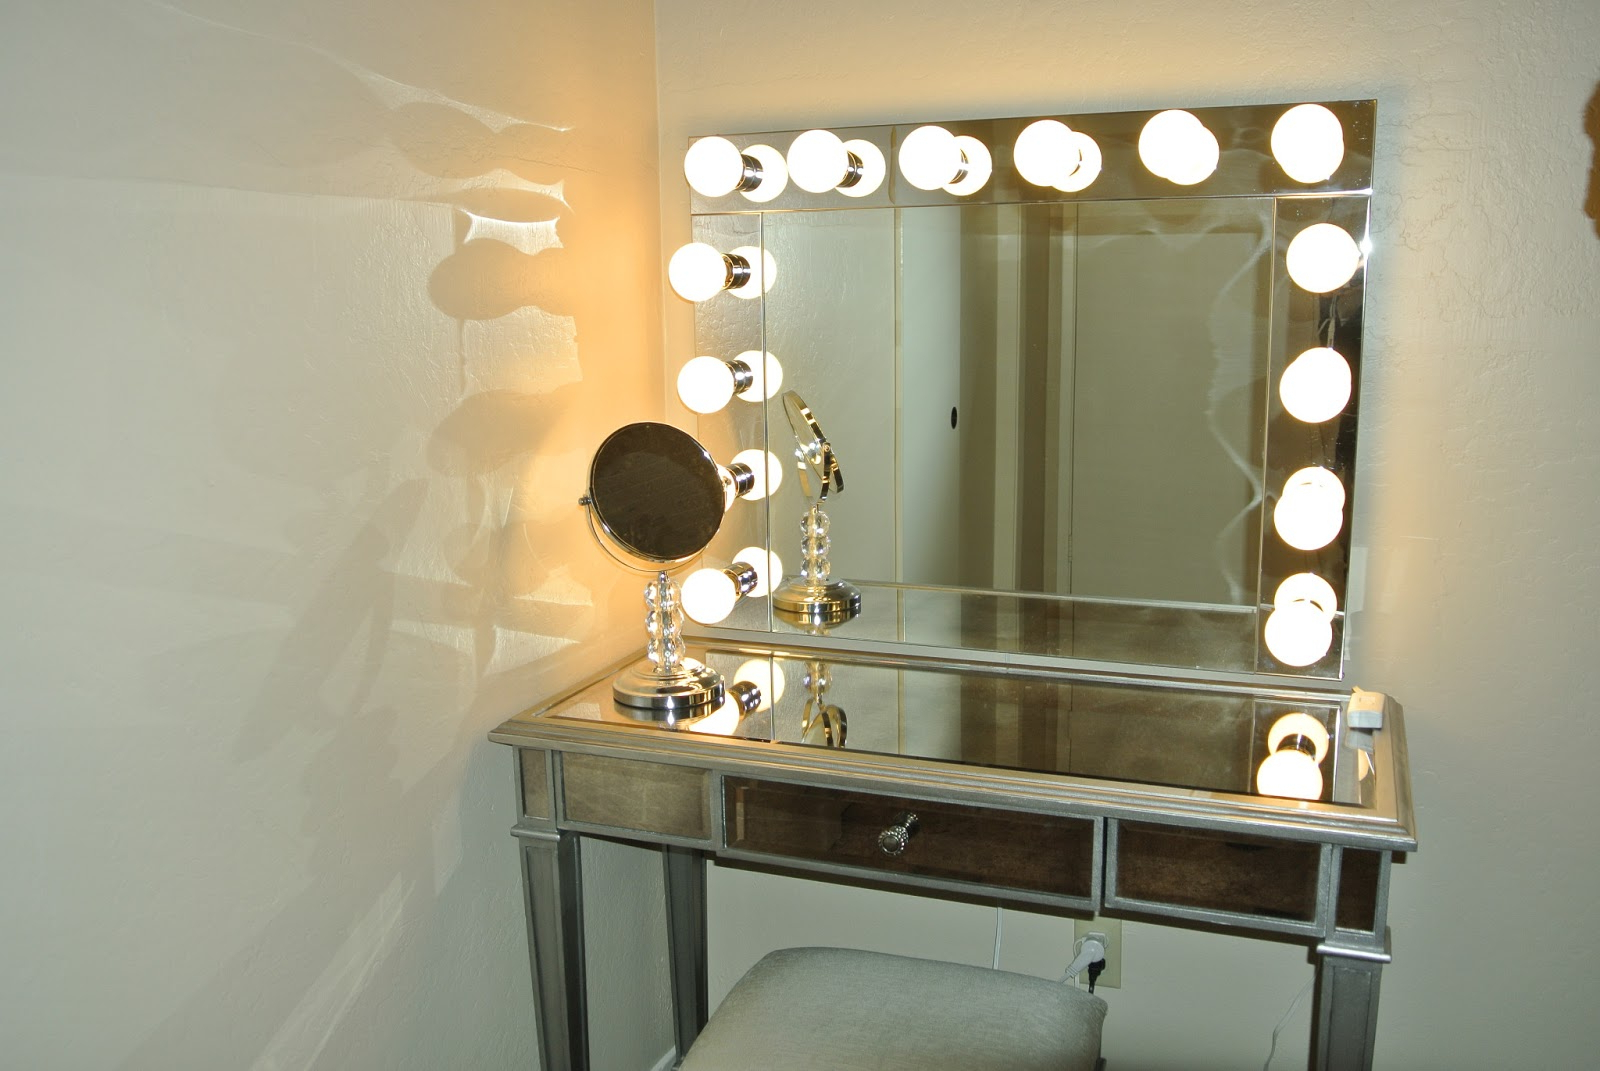 Popular Make Up Wall Mirrors In Top 10 Makeup Wall Mirror With Lights Of (View 10 of 20)